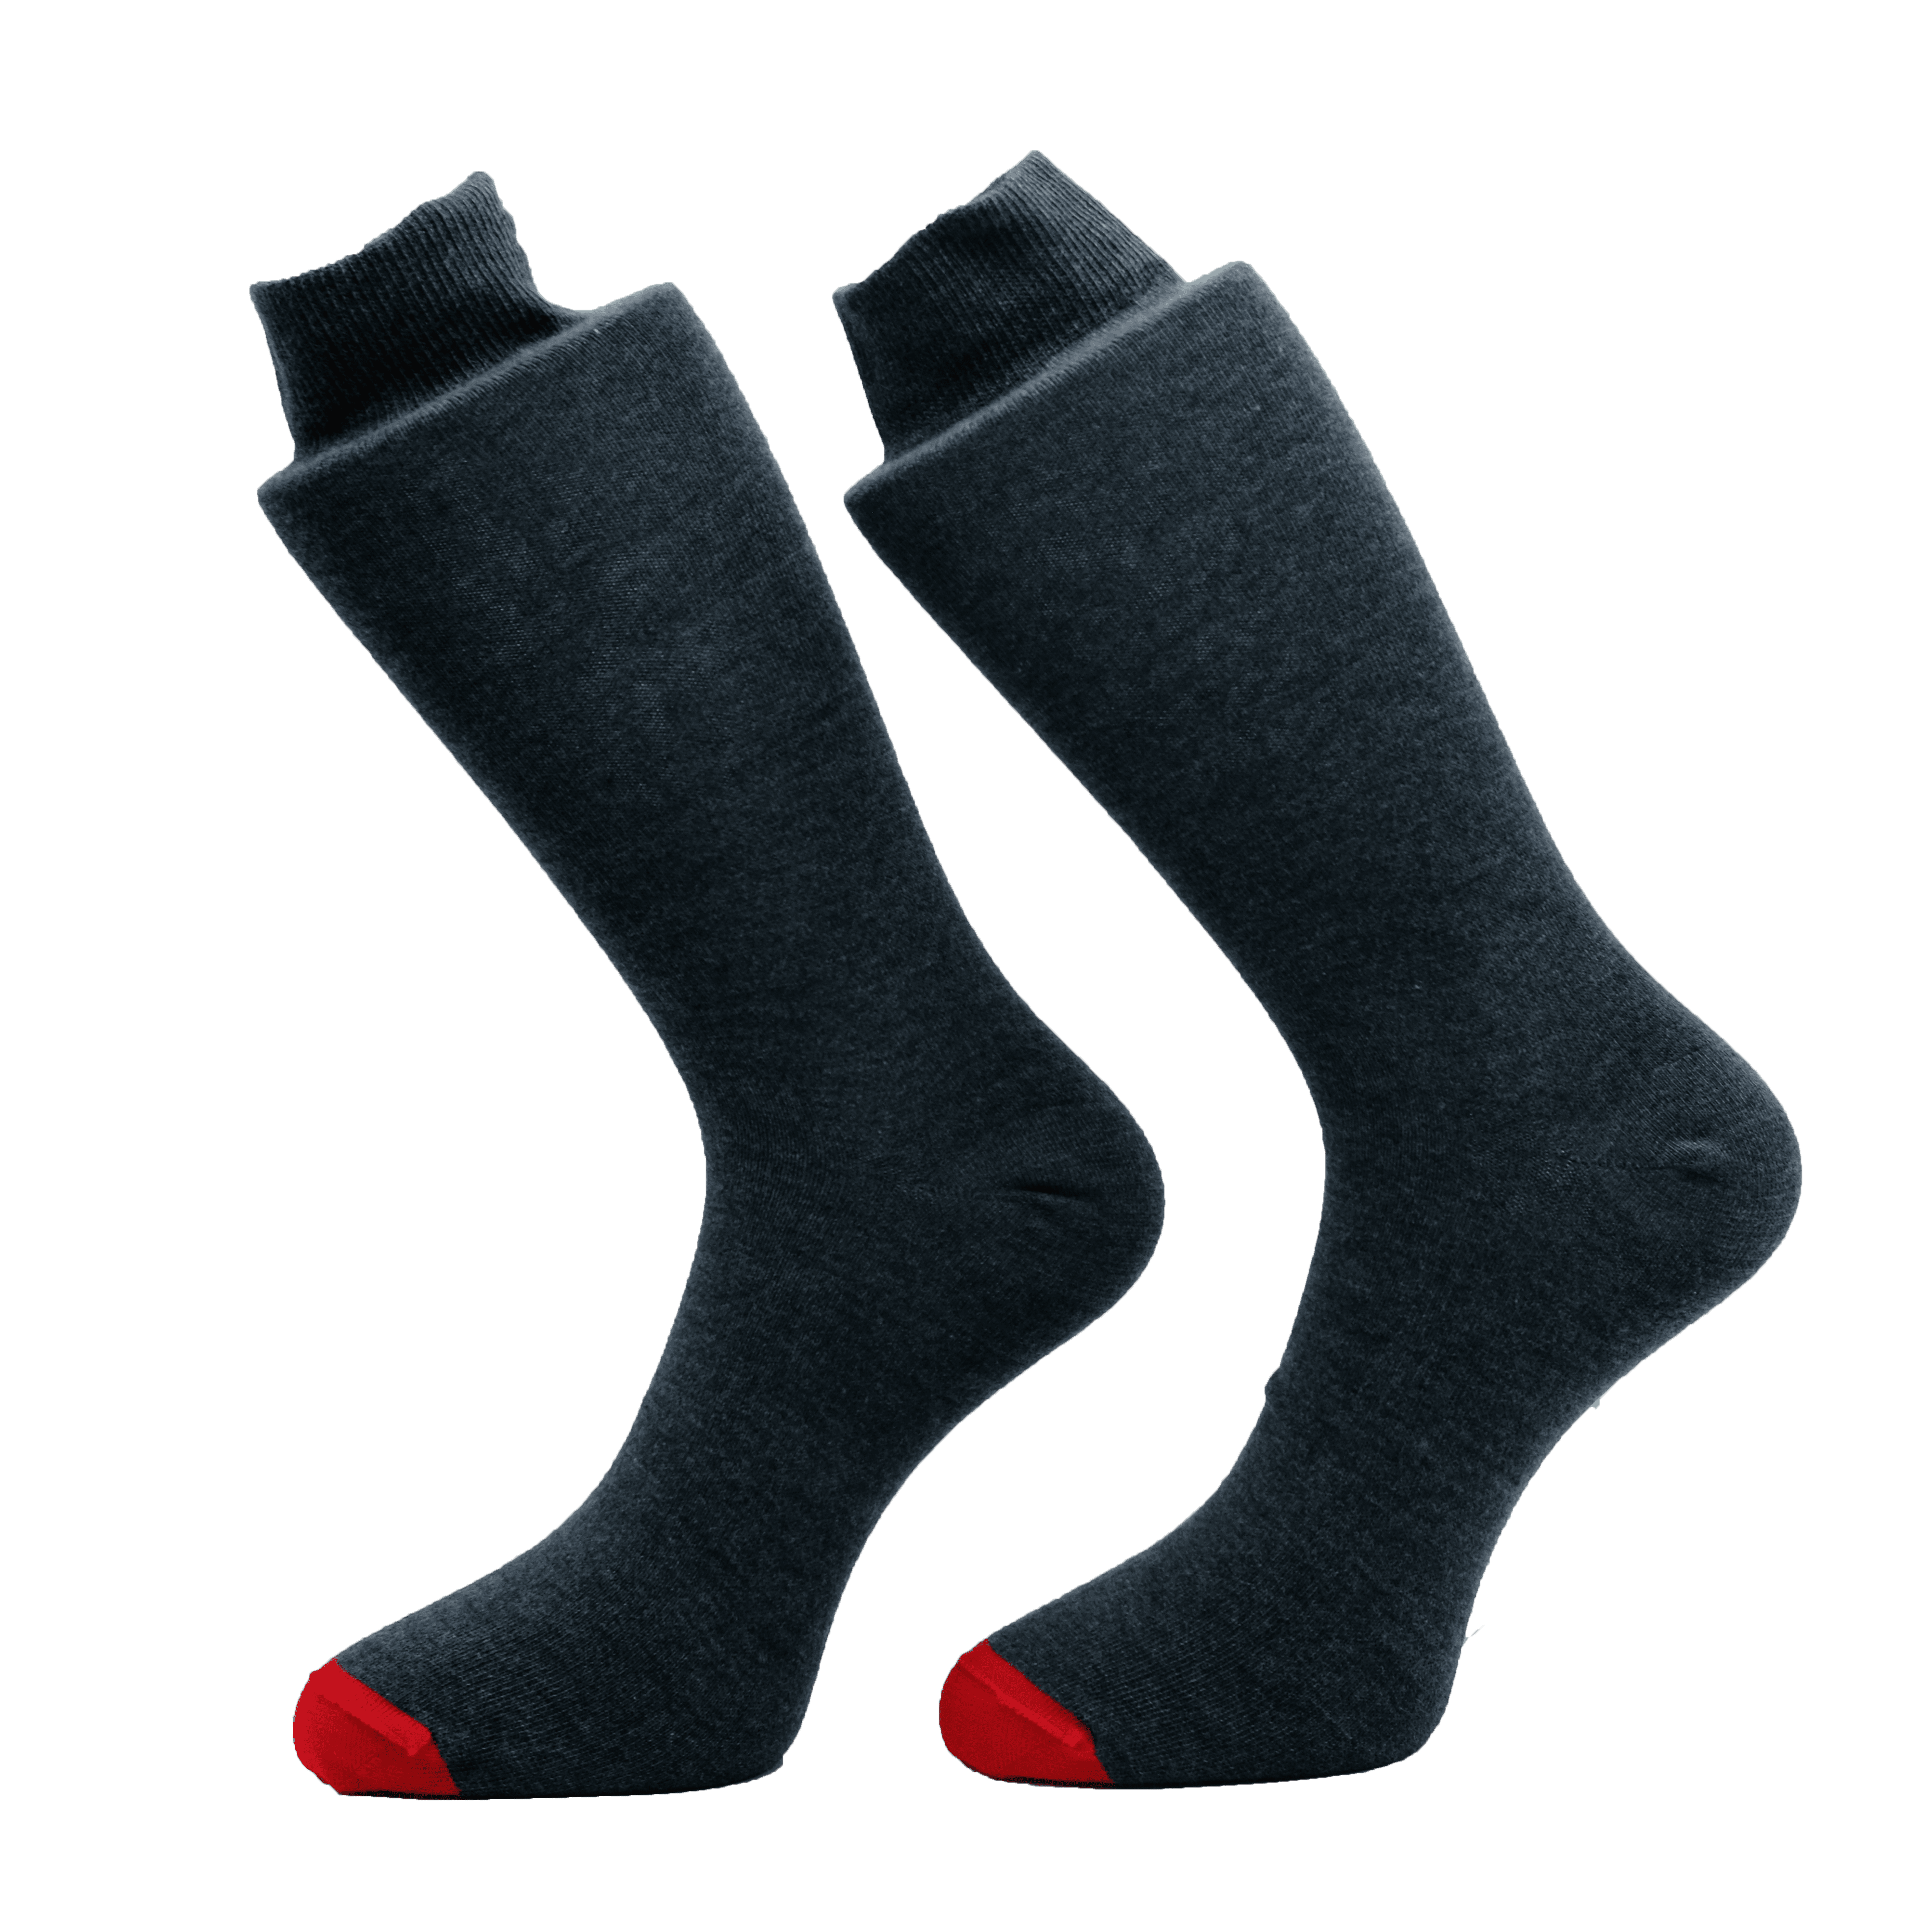 Black Business Socks